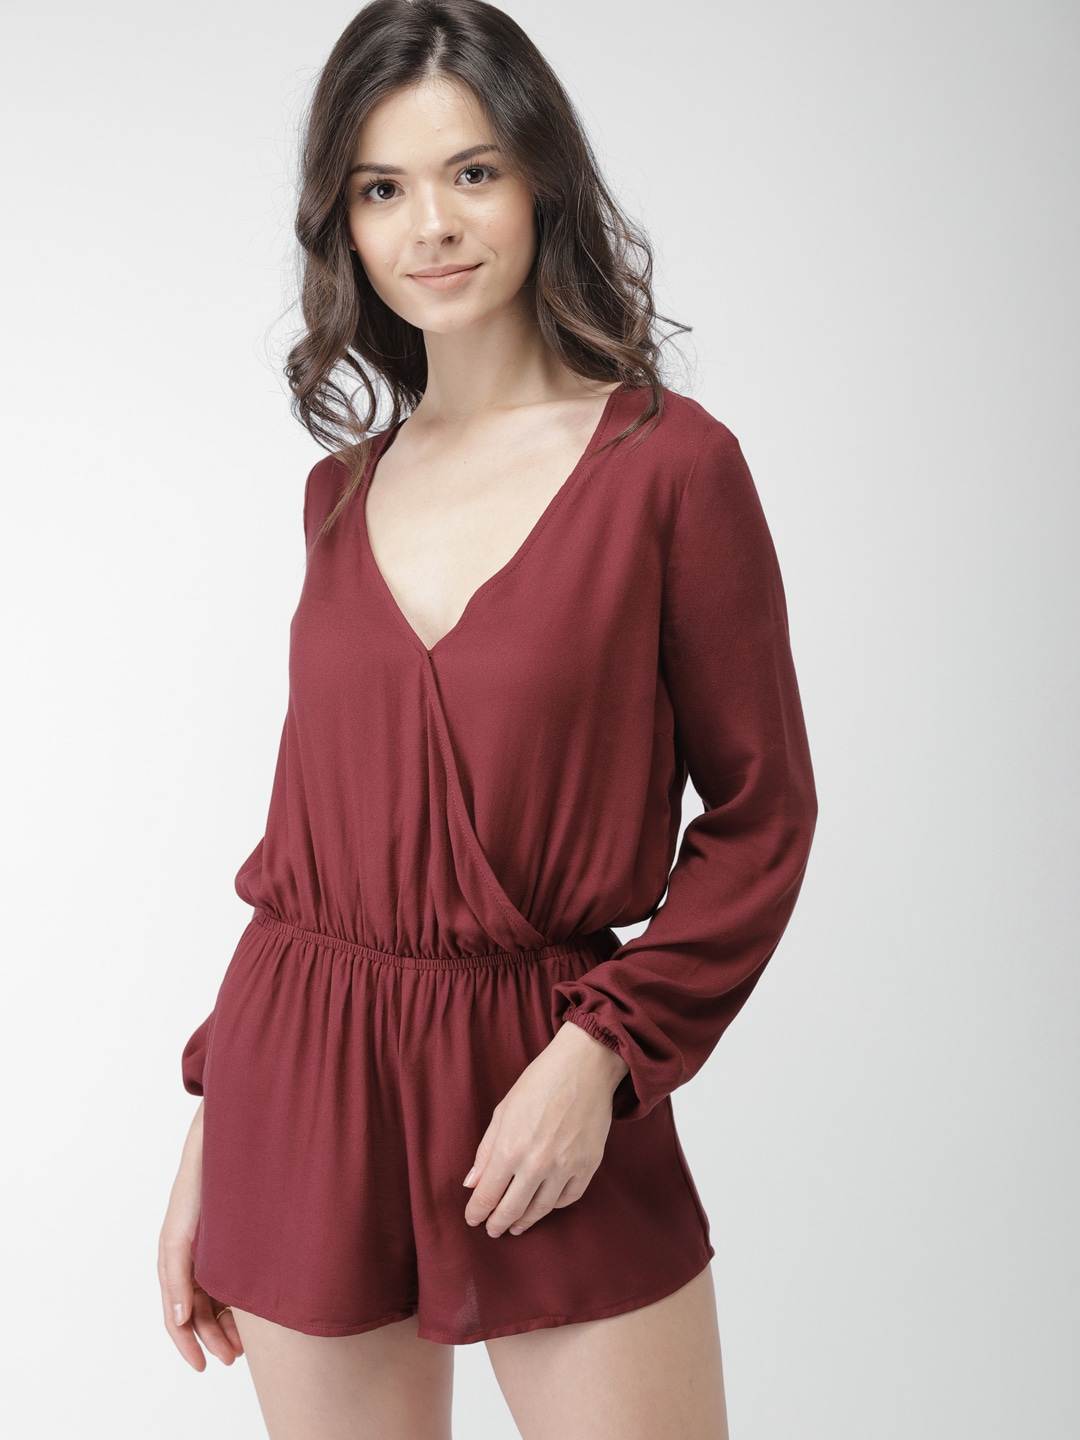 2f61c5a6606 Buy FOREVER 21 Rust Orange Playsuit - Jumpsuit for Women 1858000 ...